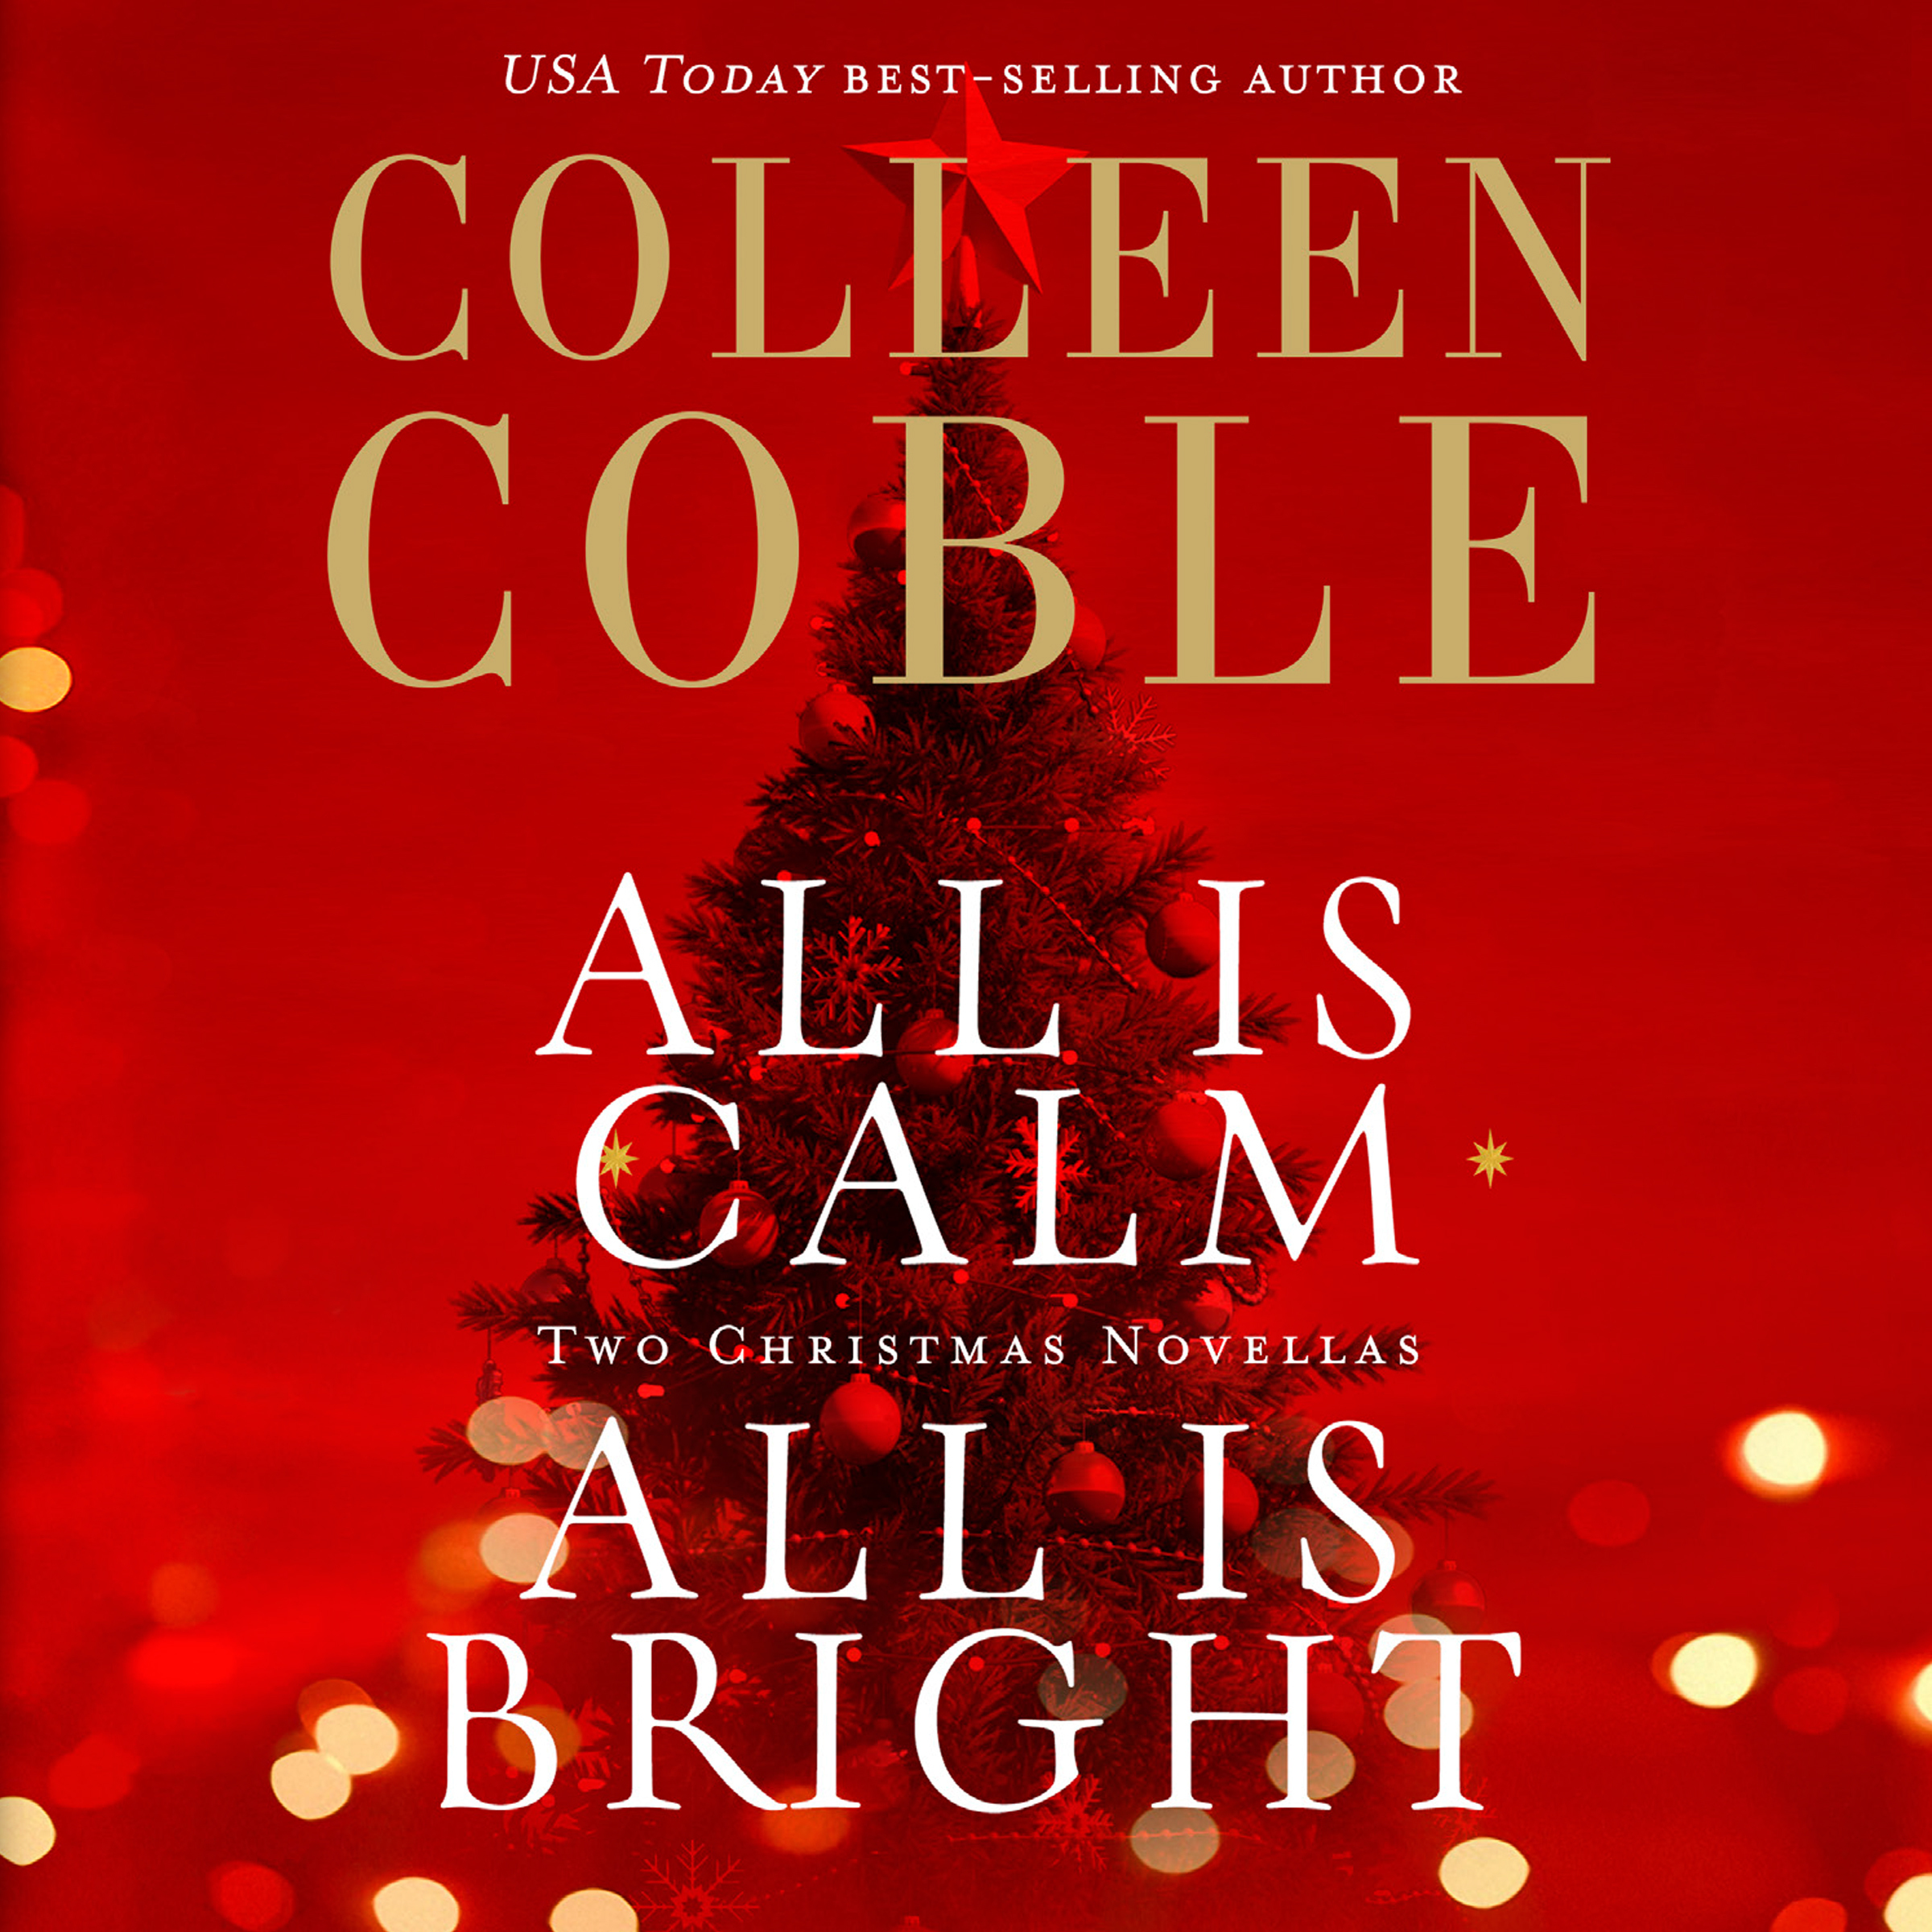 Printable All is Calm, All is Bright: A Colleen Coble Christmas Collection Audiobook Cover Art